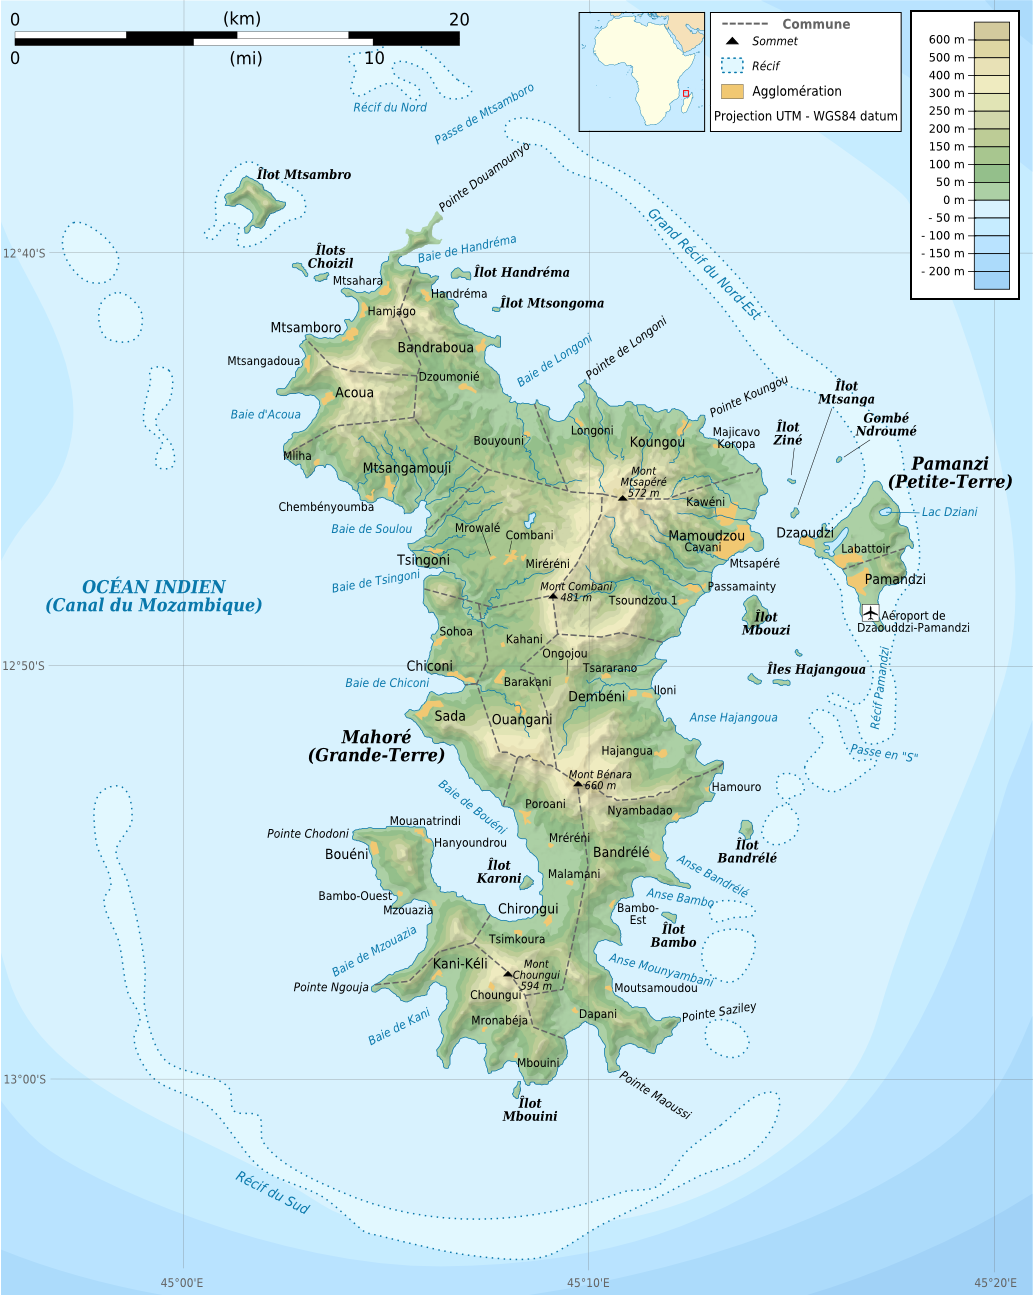 Topographic map of Mayotte, an Indian Ocean island group which is part of France, and which became officially part of the European Union as well on January 1, 2014